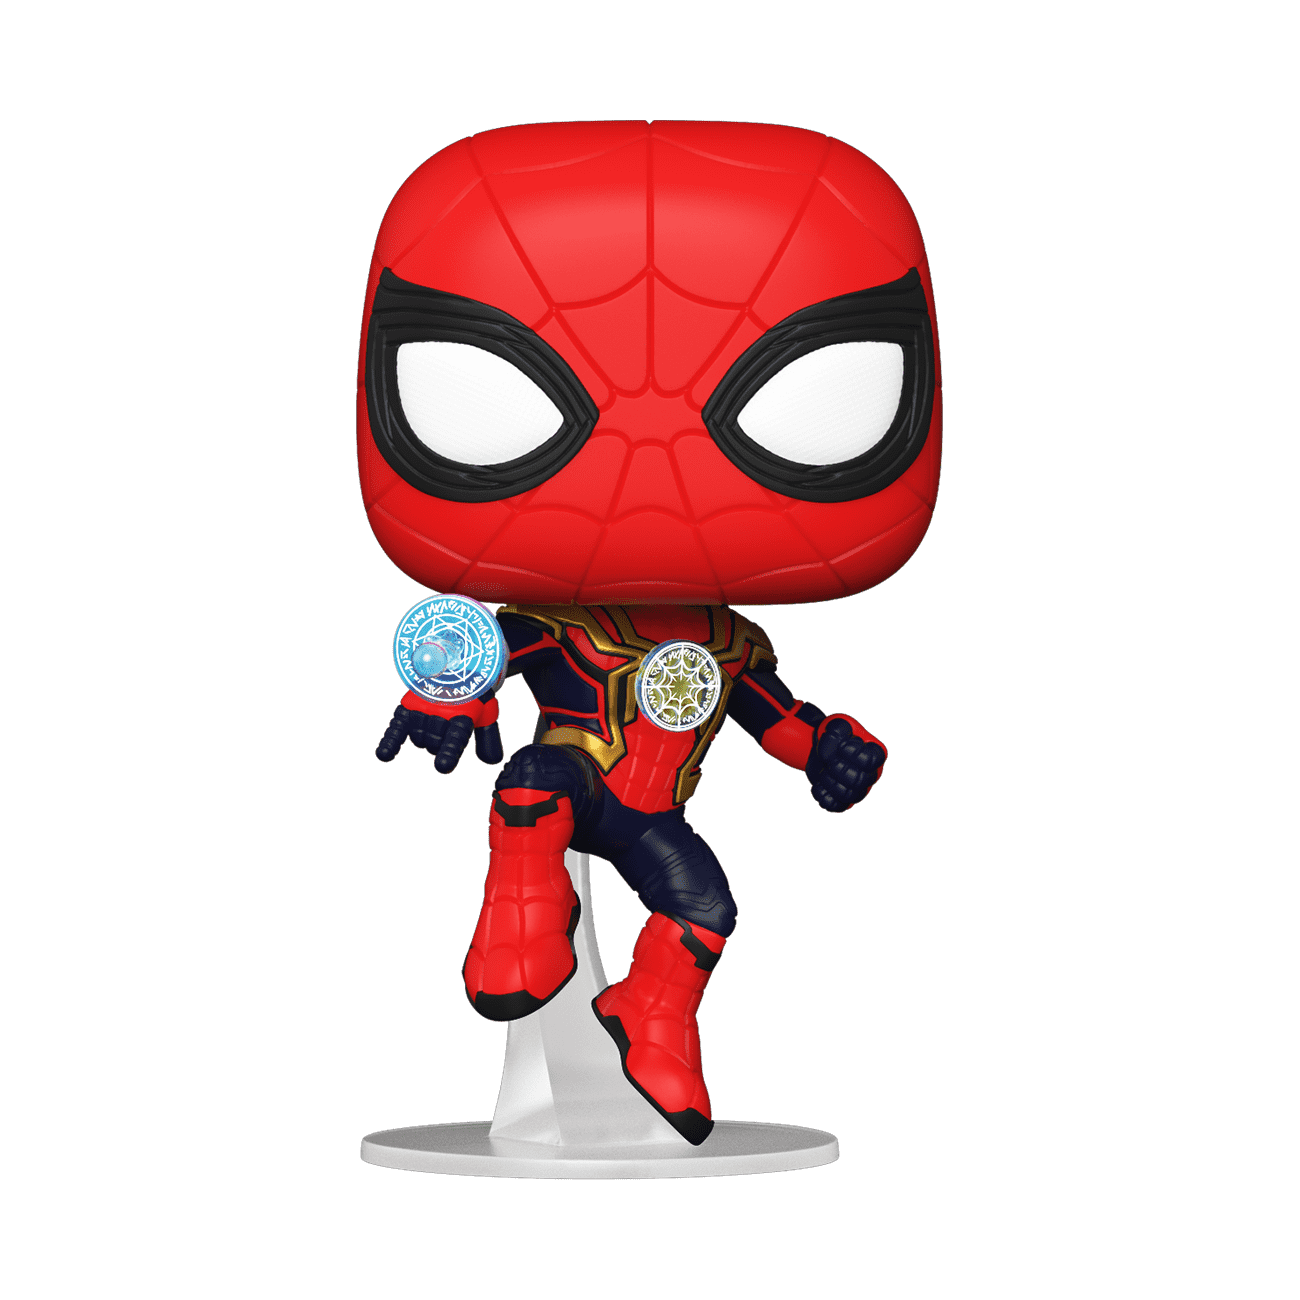 'Spider-Man: No Way Home' Funko - Integrated Suit